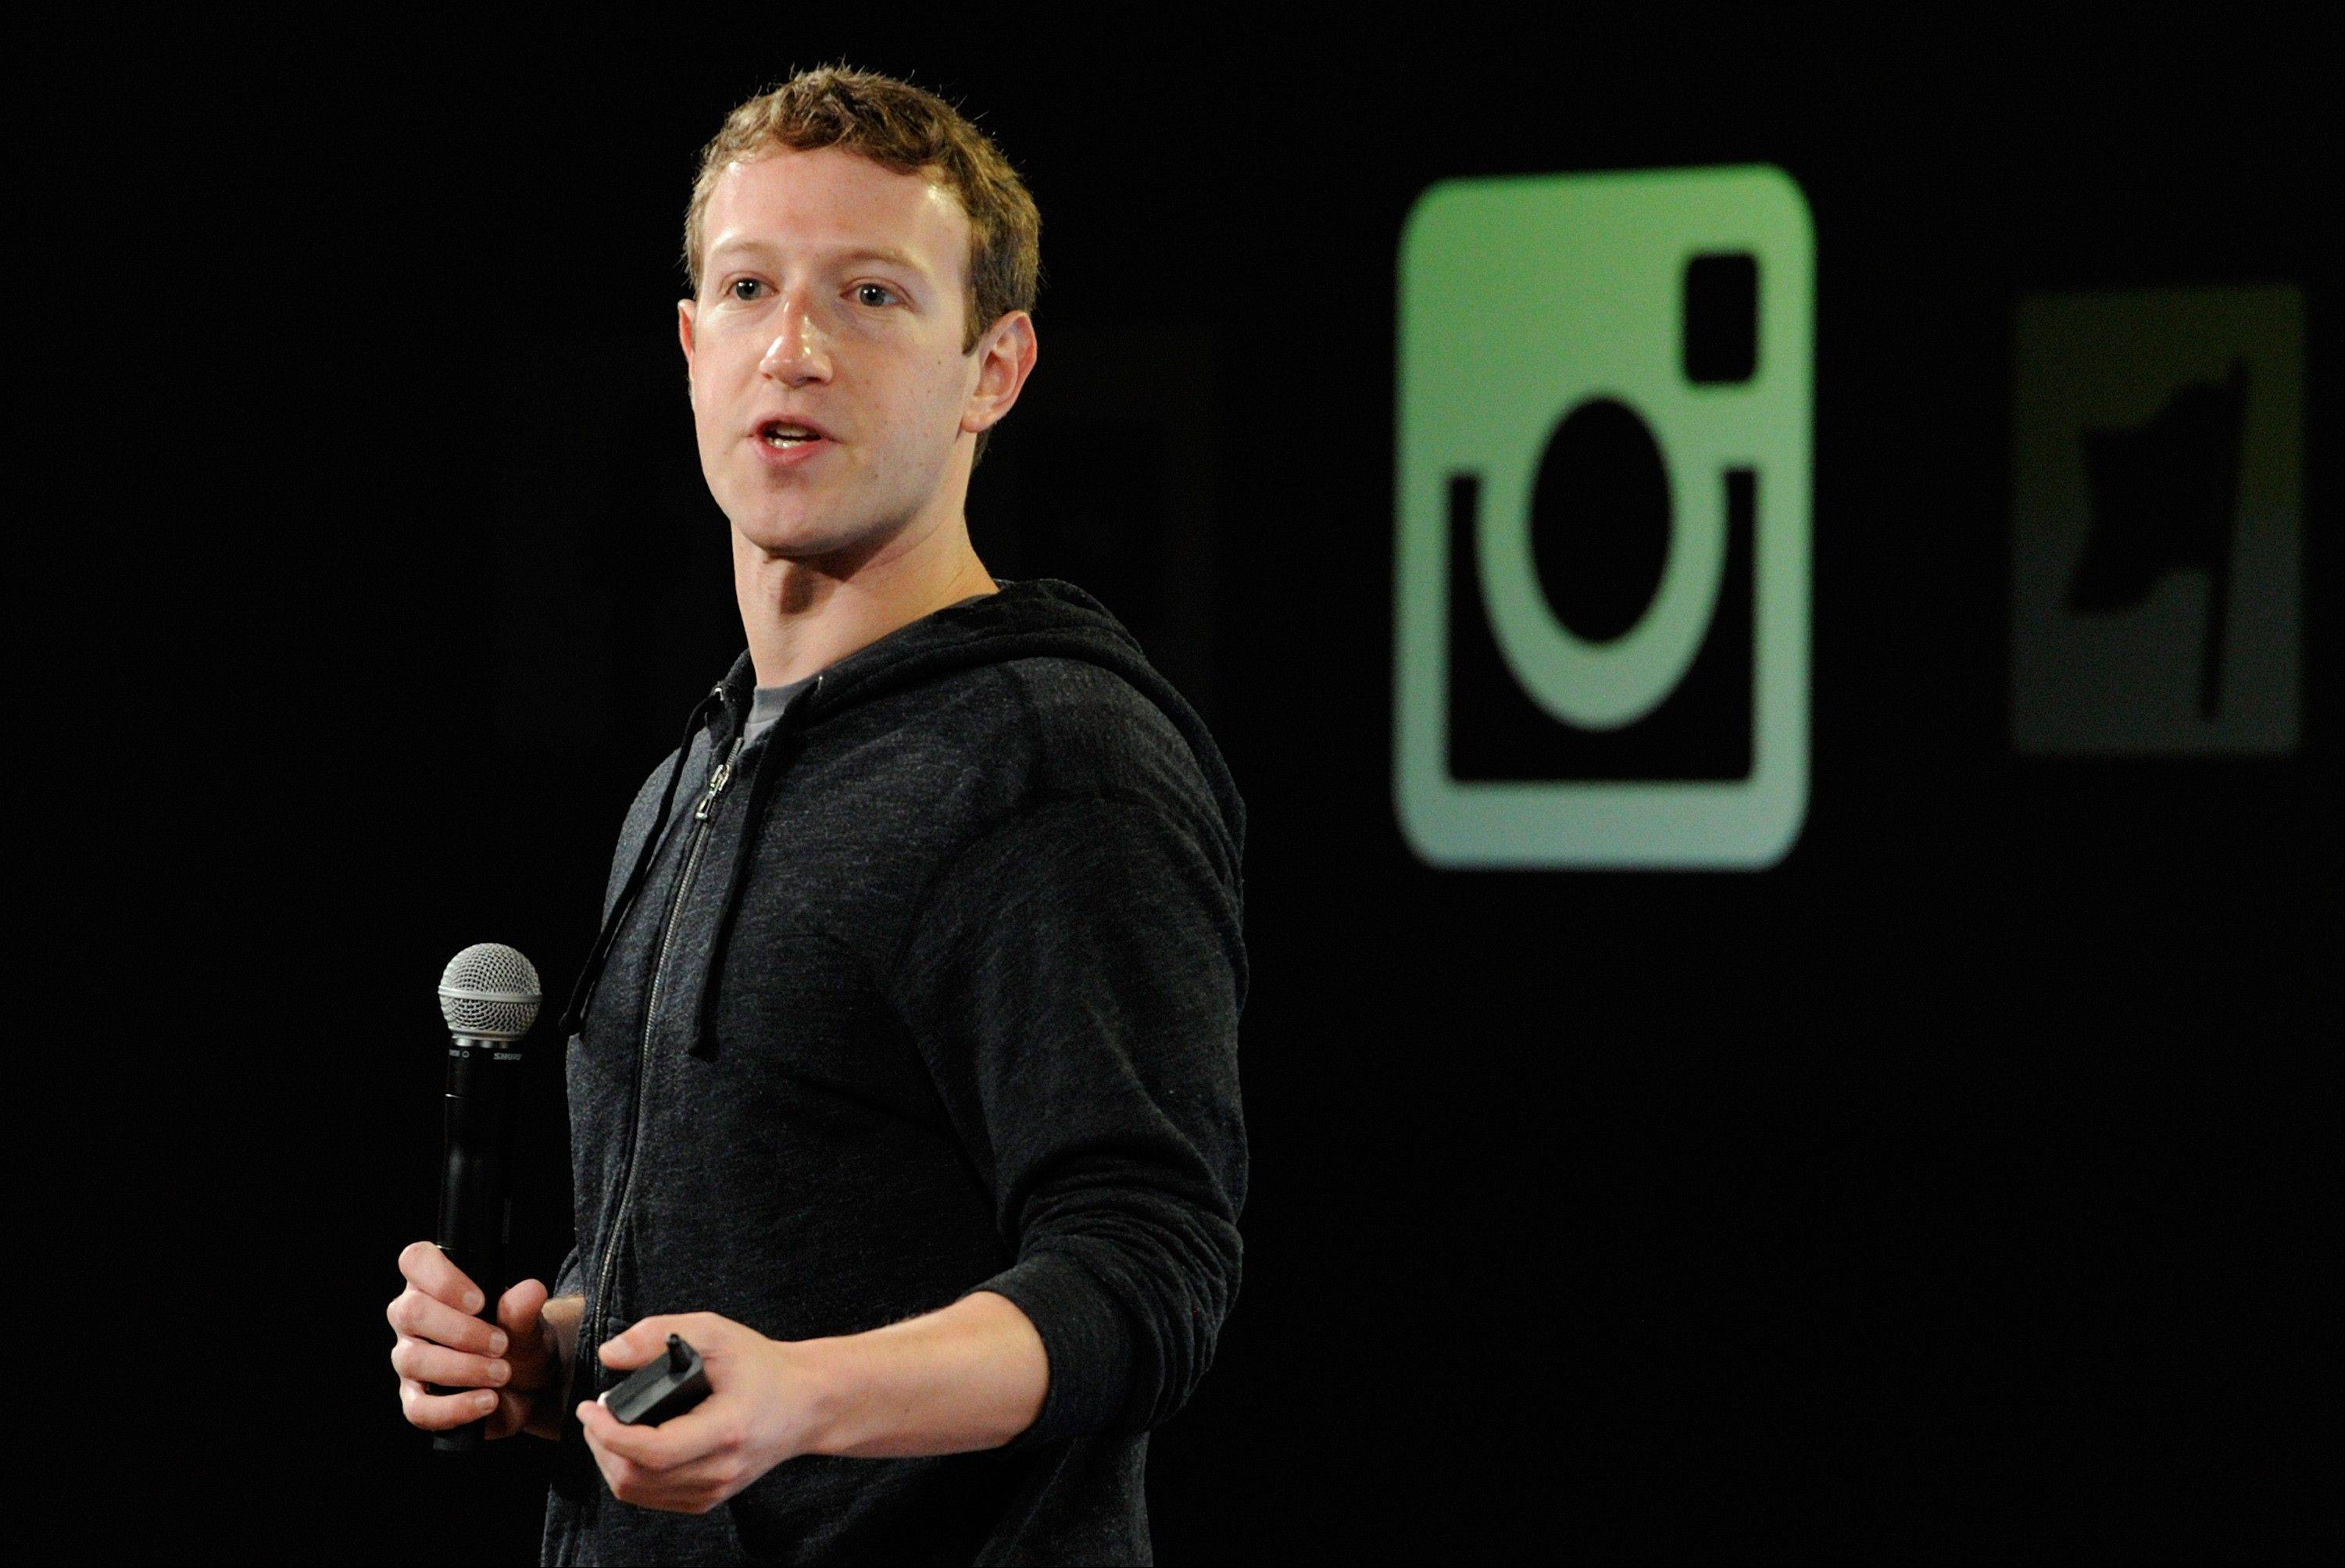 Facebook plans to offer 70 million shares of its Class A stock in a sale that includes more than 41 million shares from chairman and CEO Mark Zuckerberg, seen here.